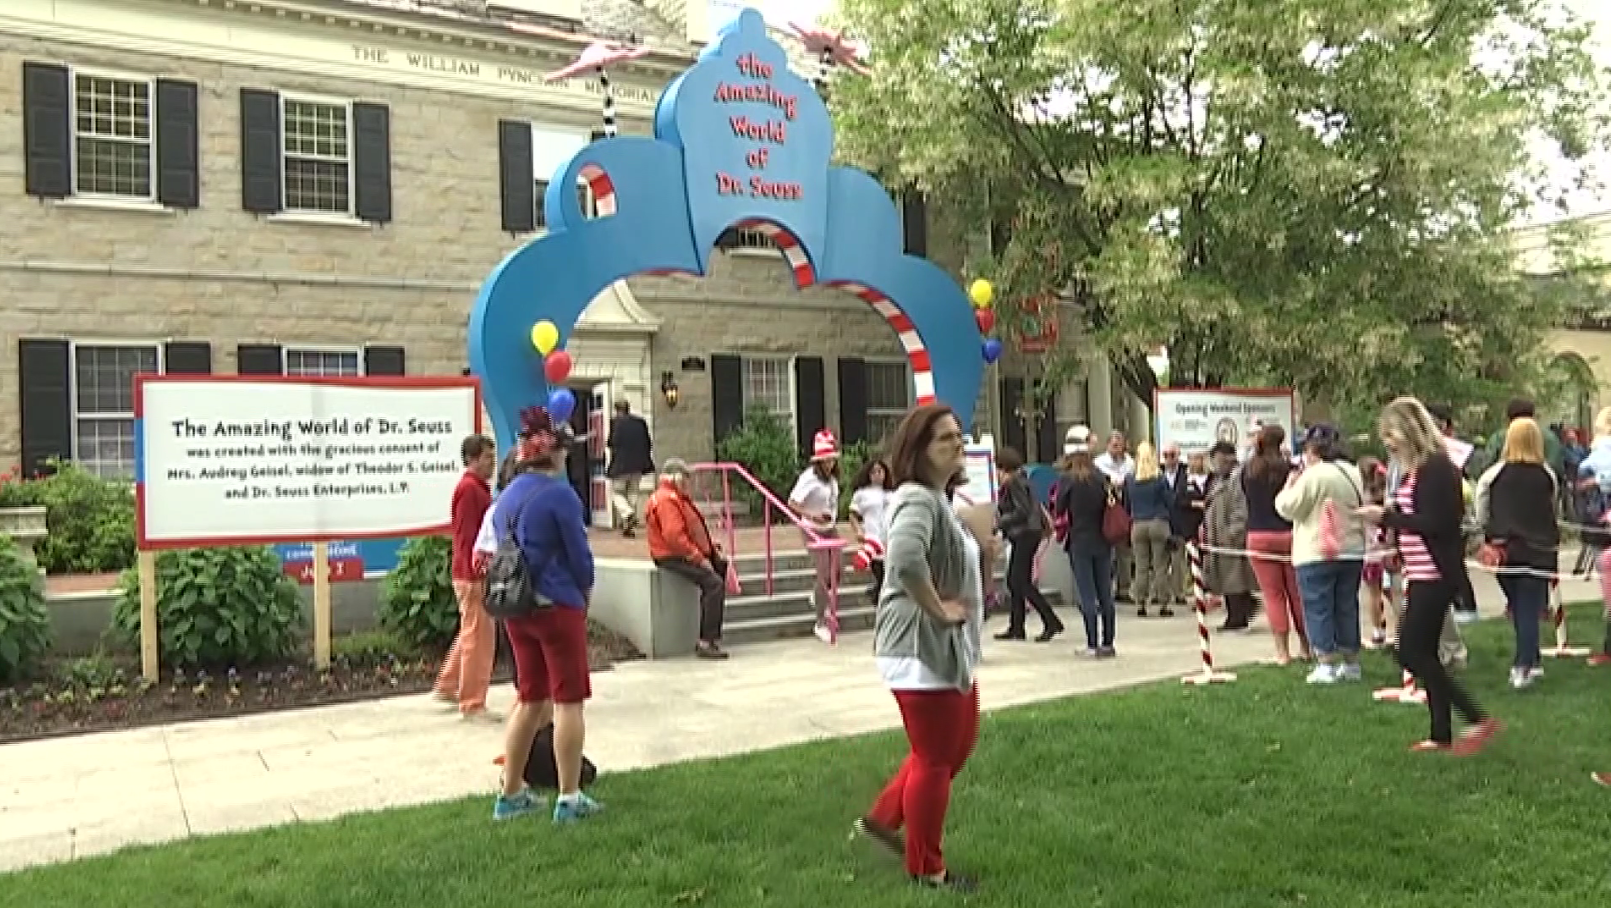 Oh the Places You'll Go! Dr Seuss museum opens doors